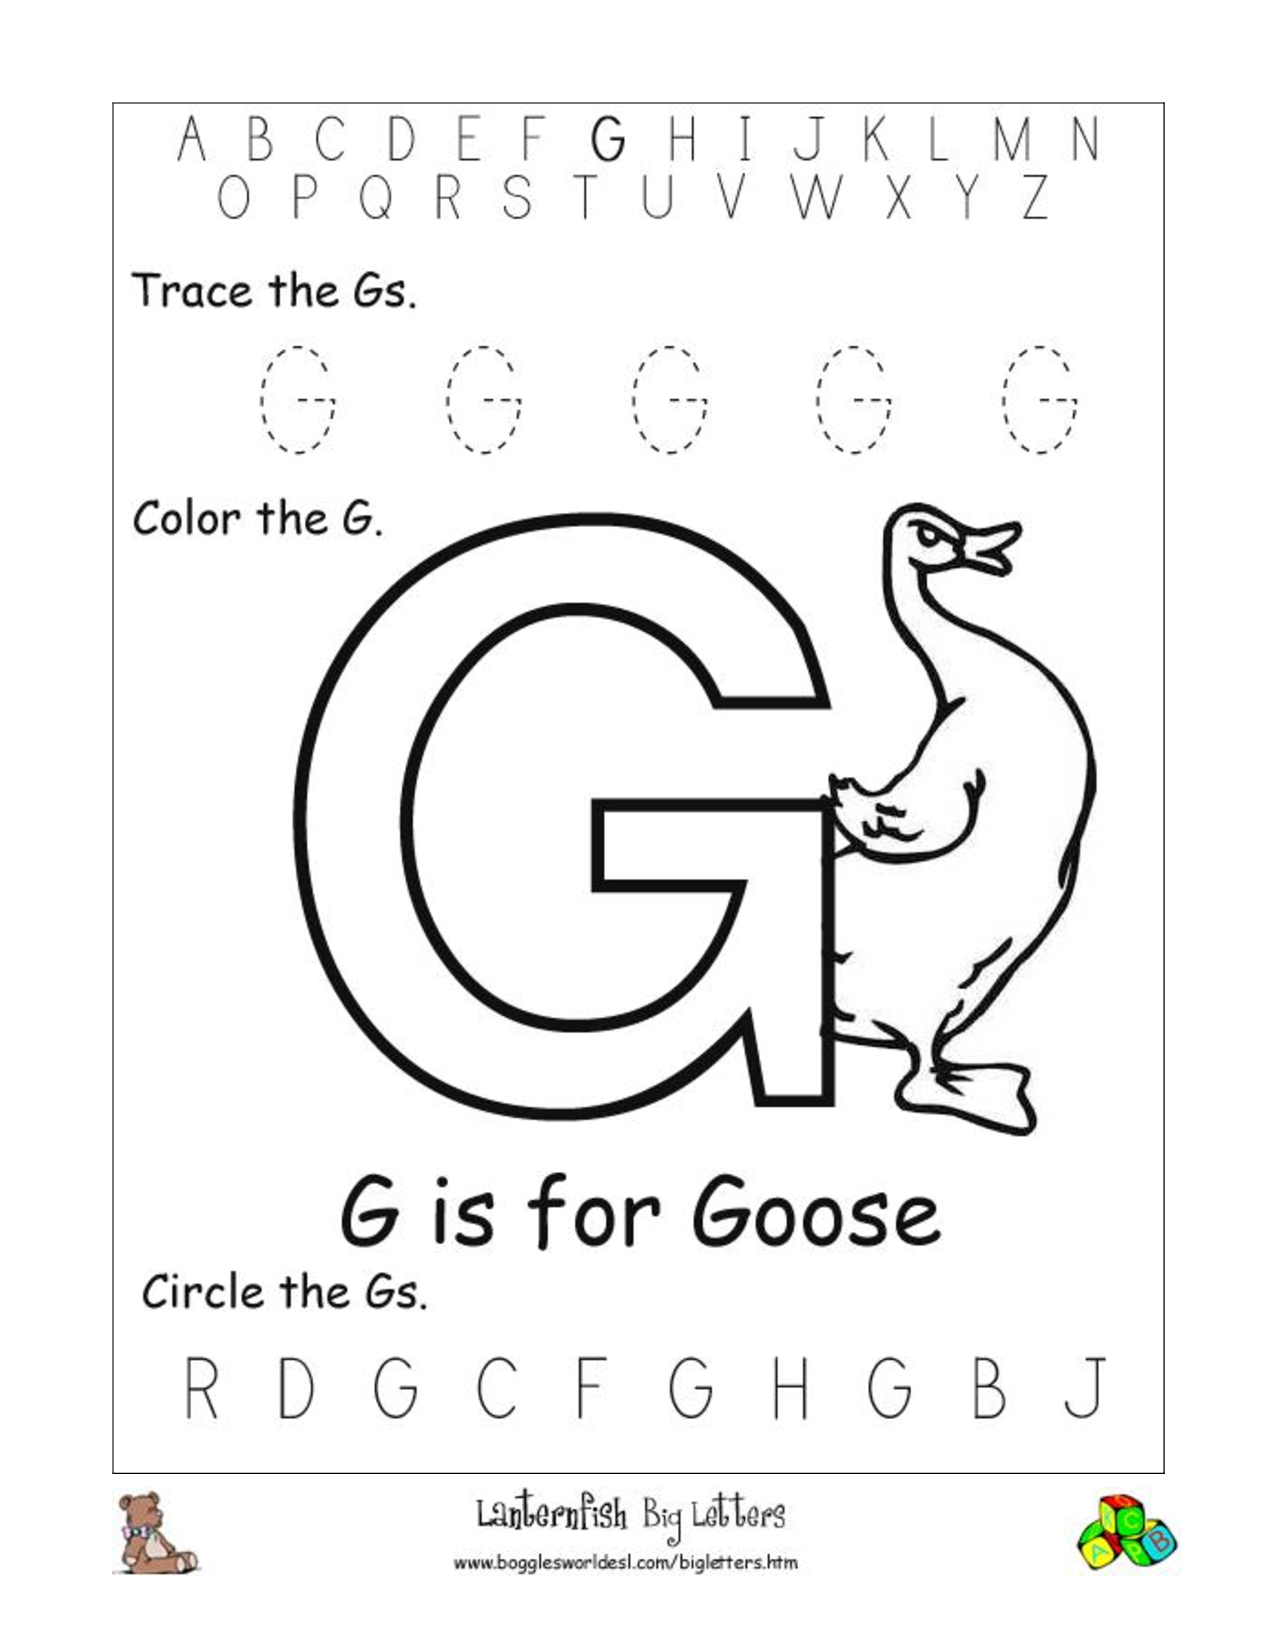 Alphabet Worksheets For Preschoolers | Alphabet Worksheet Big Letter | Letter G Printable Worksheets